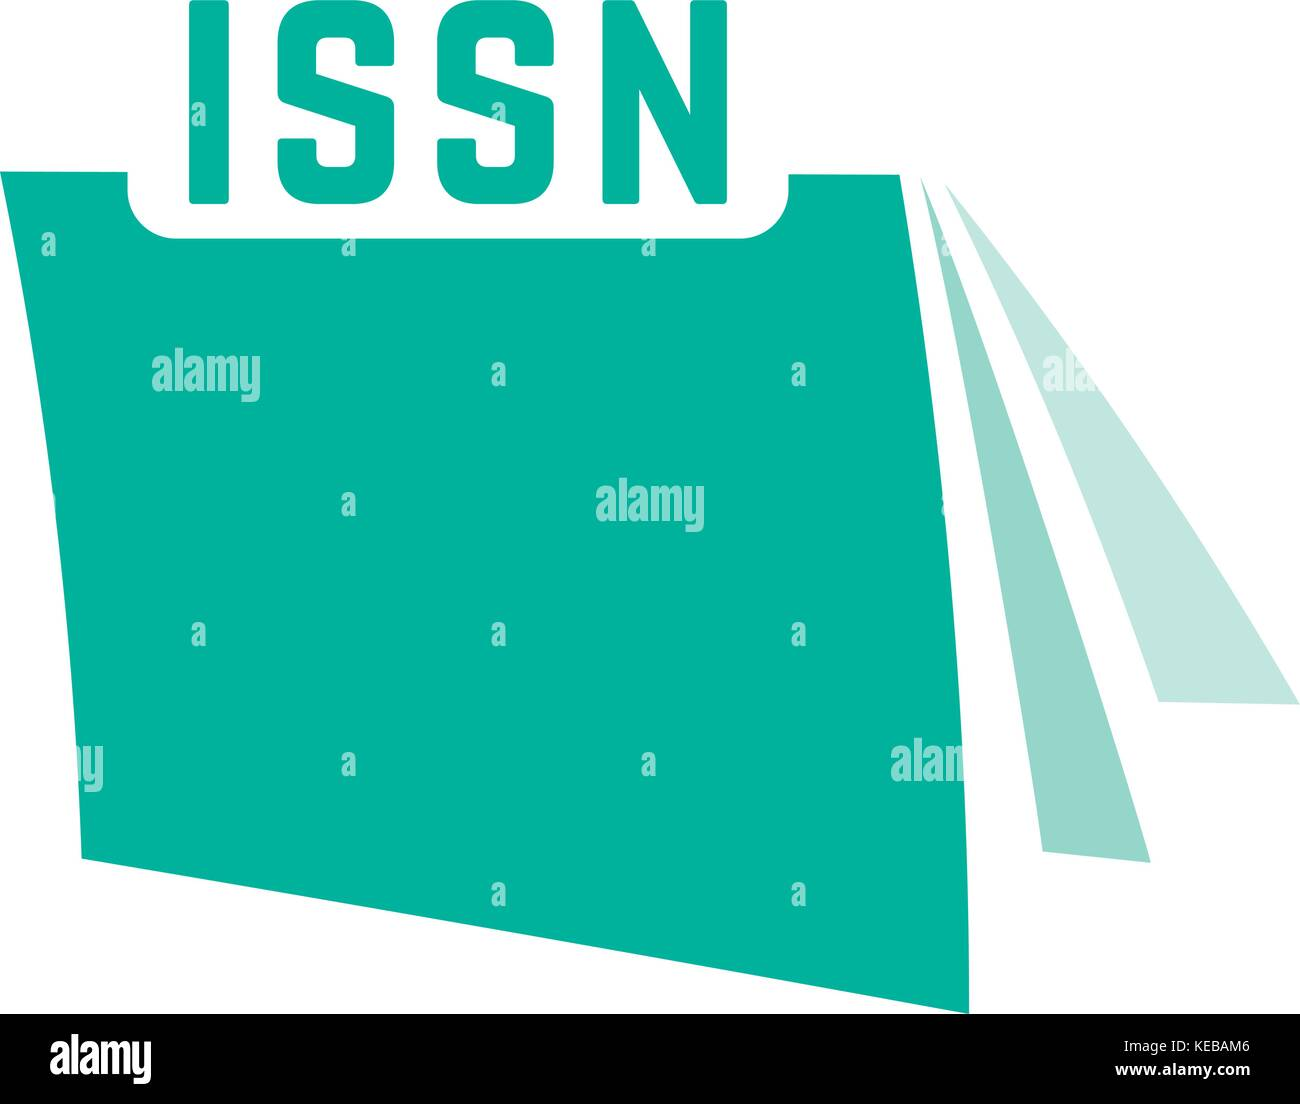 green issn with journal icon - Stock Image